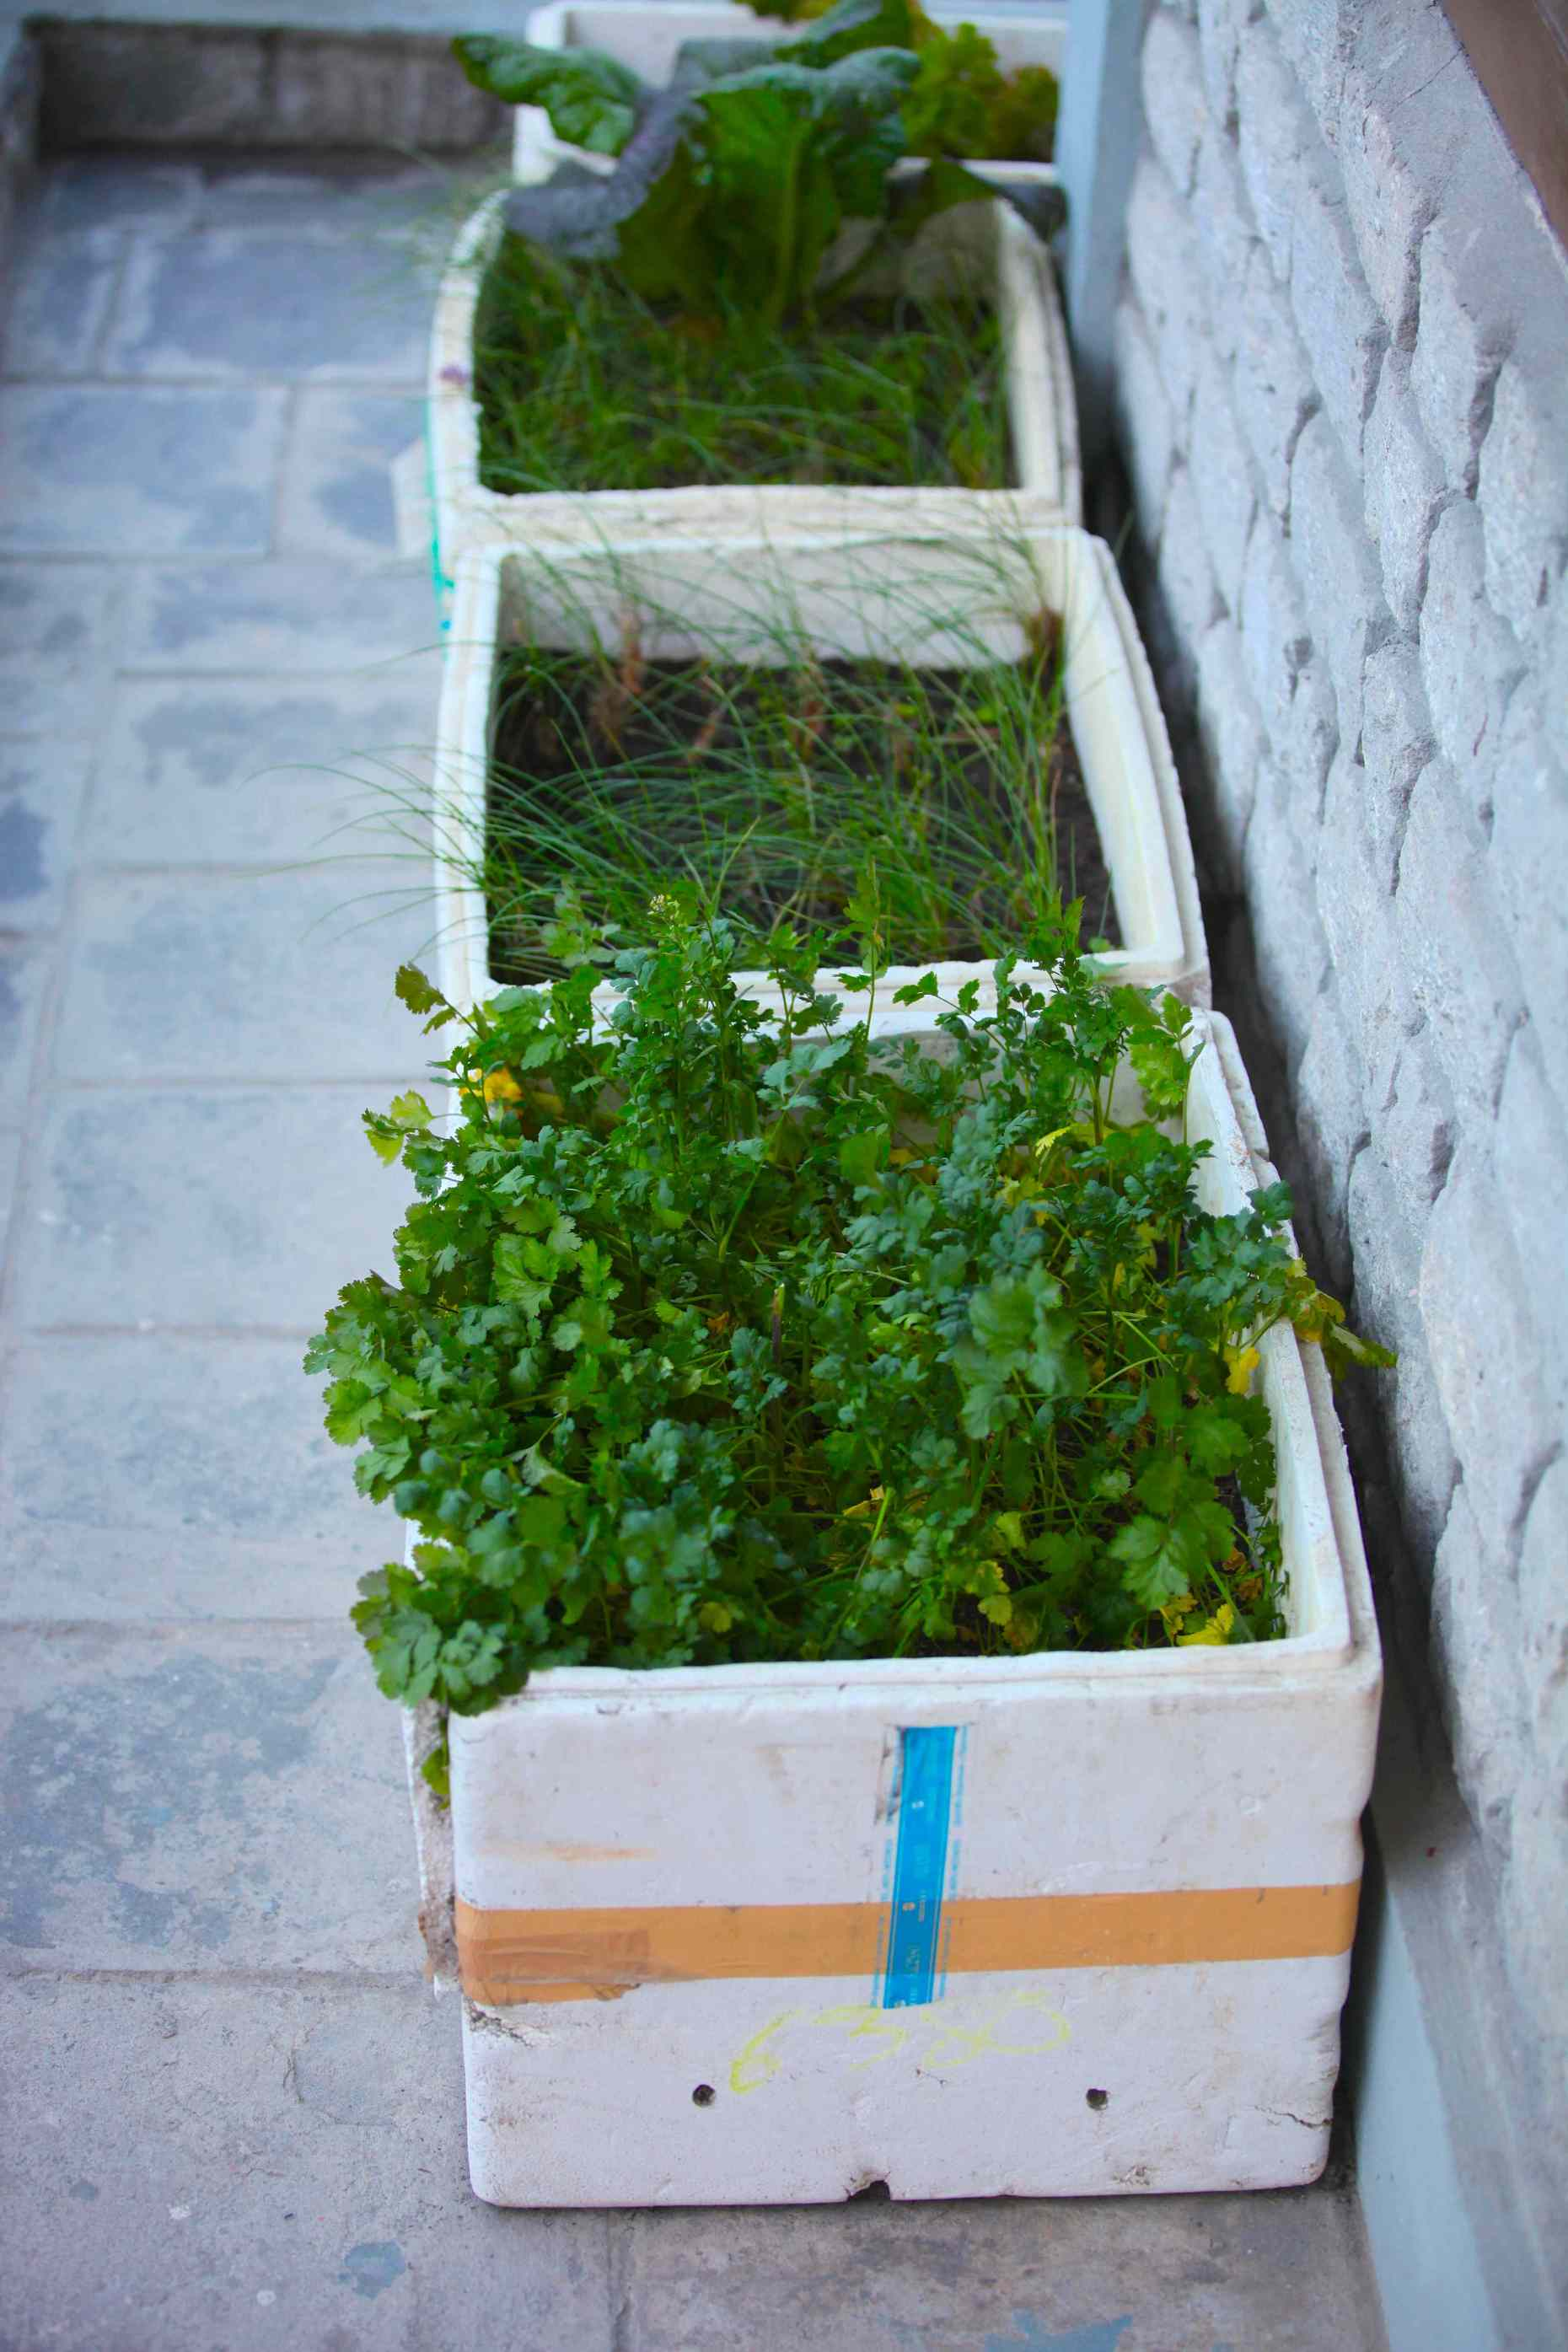 Herb planters in styrofoam. The village of Kalopani doesn't have styrofoam recycling. But this family found a way to reuse theirs to plant herbs for their restaurant.